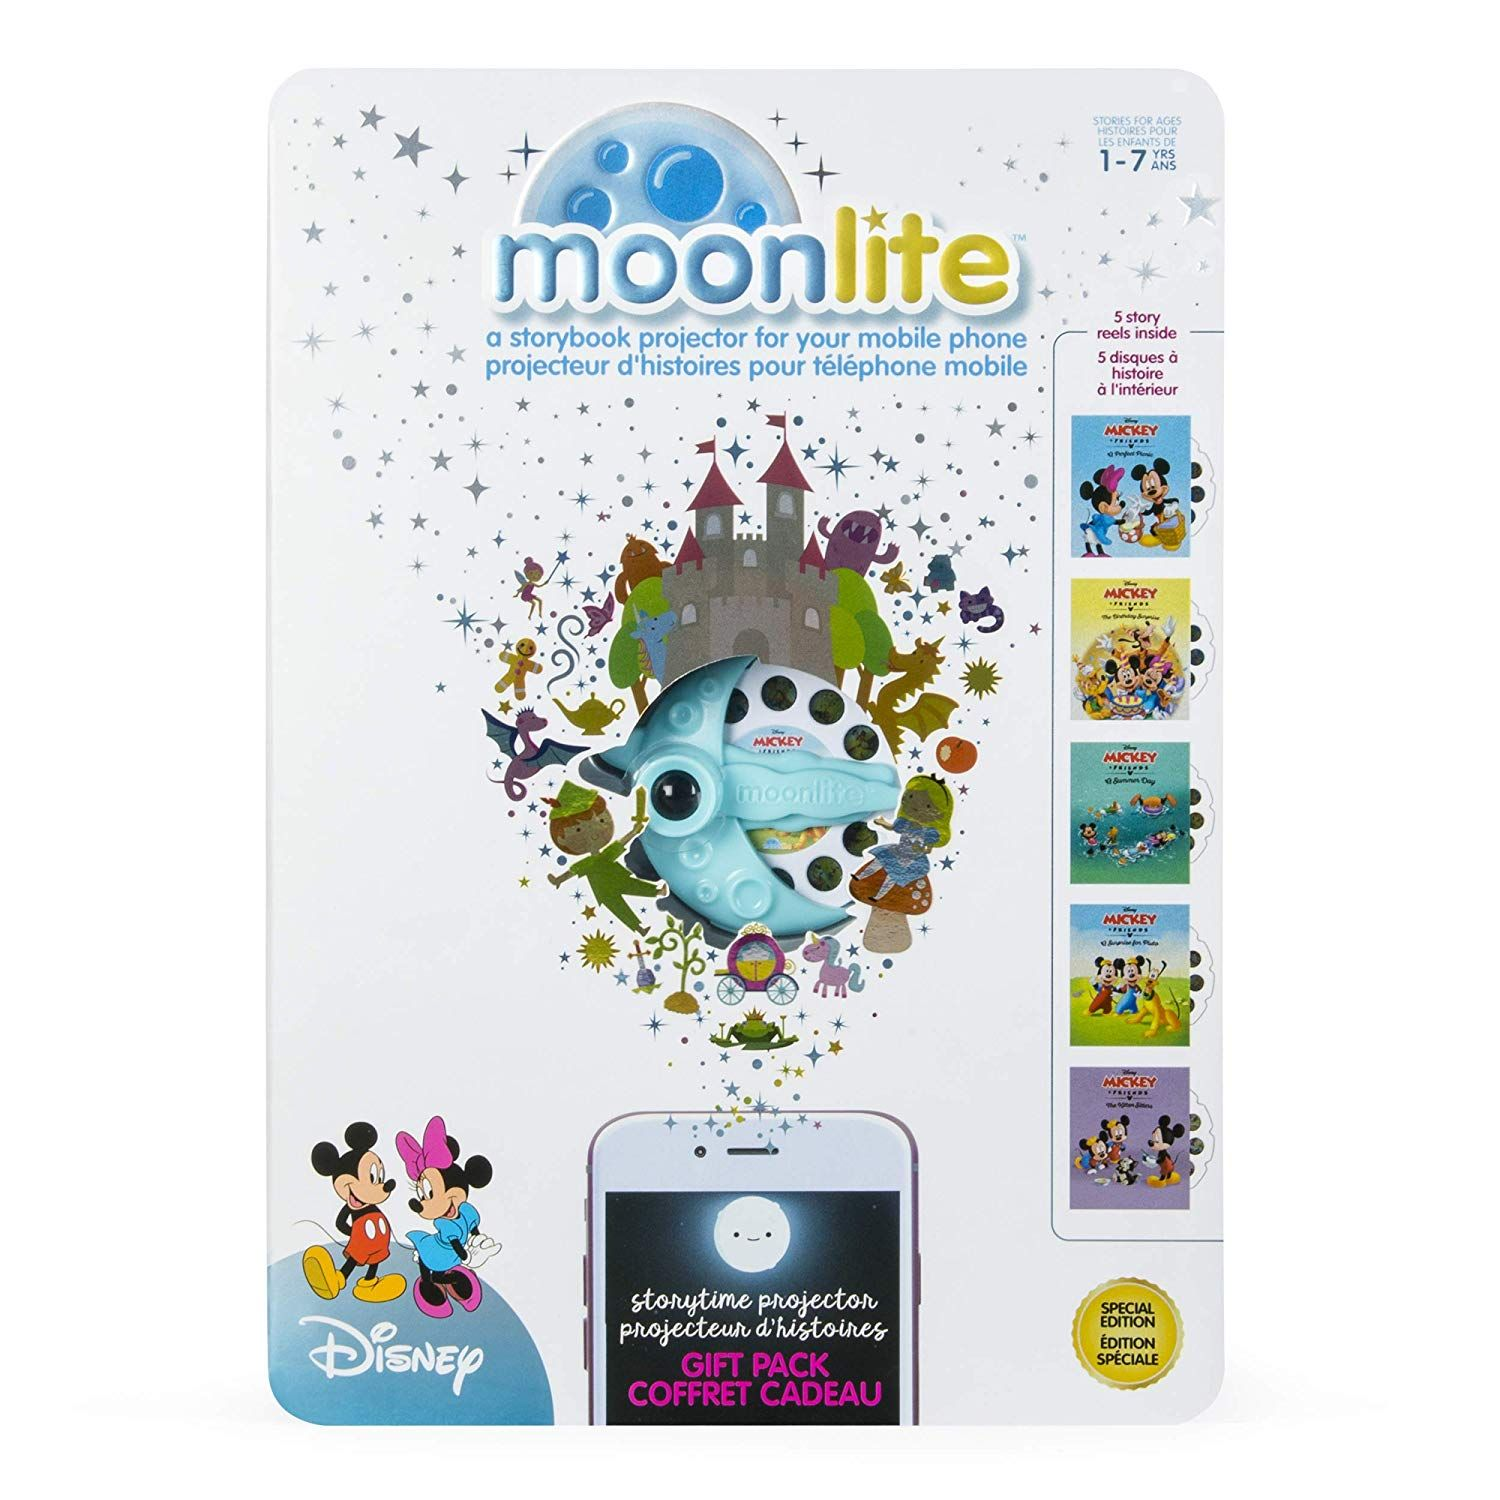 Storybook Projector for Smartphones with 5 Stories Moonlite Gift Pack